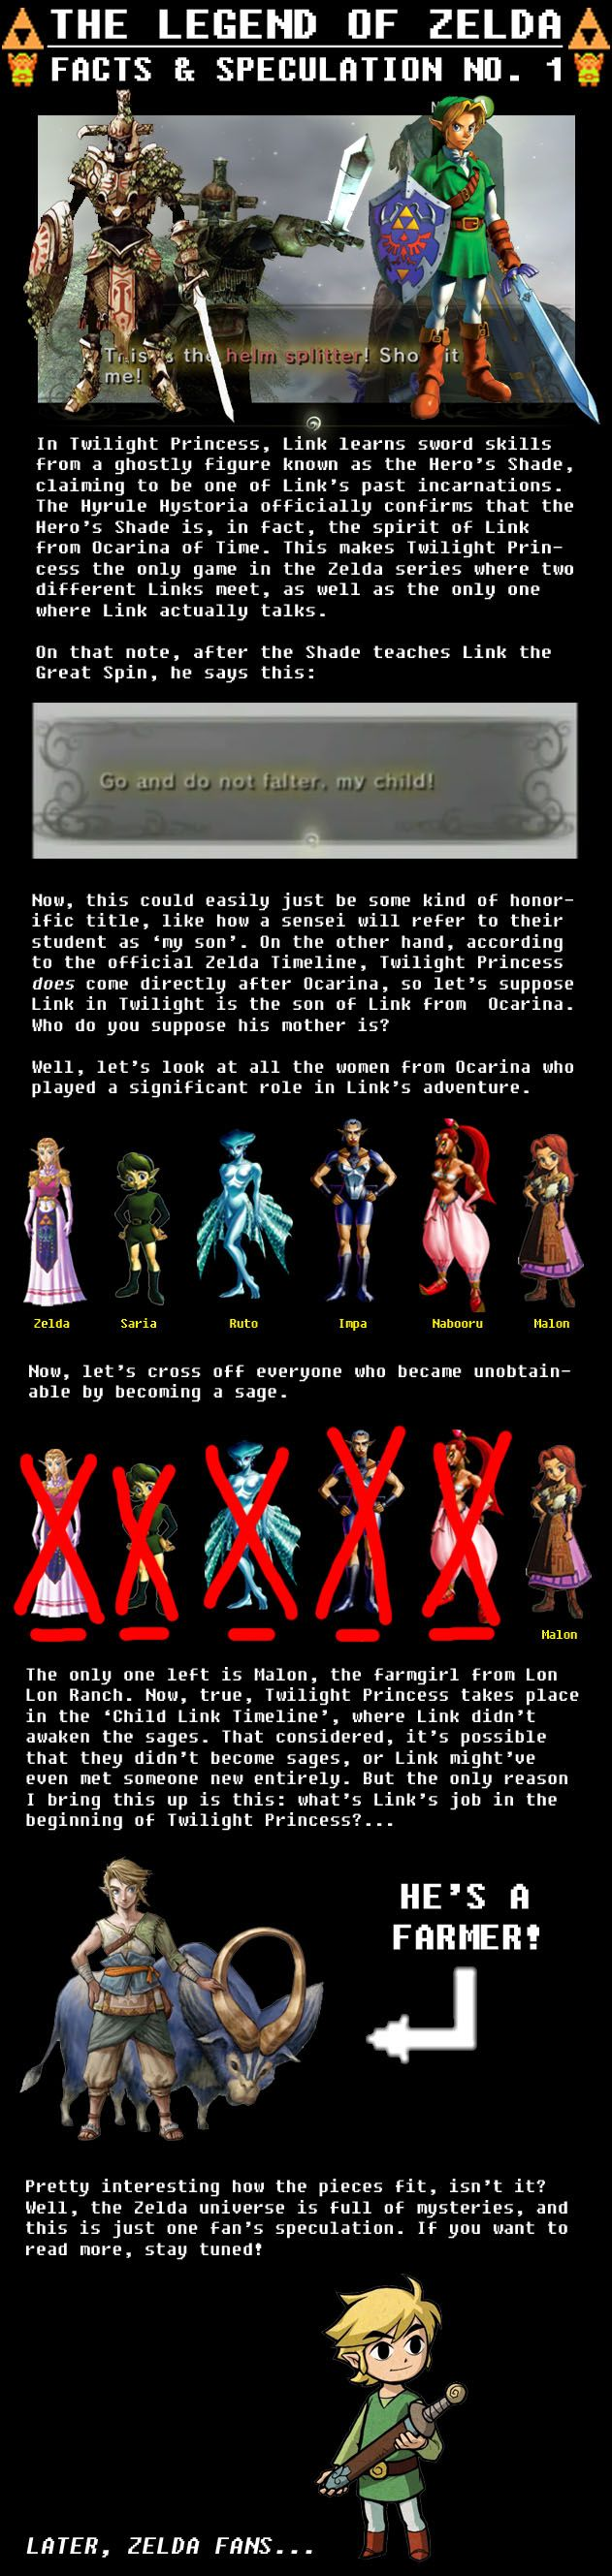 I've kinda always assumed, for some reason, that OoT Link ended up with Malon.